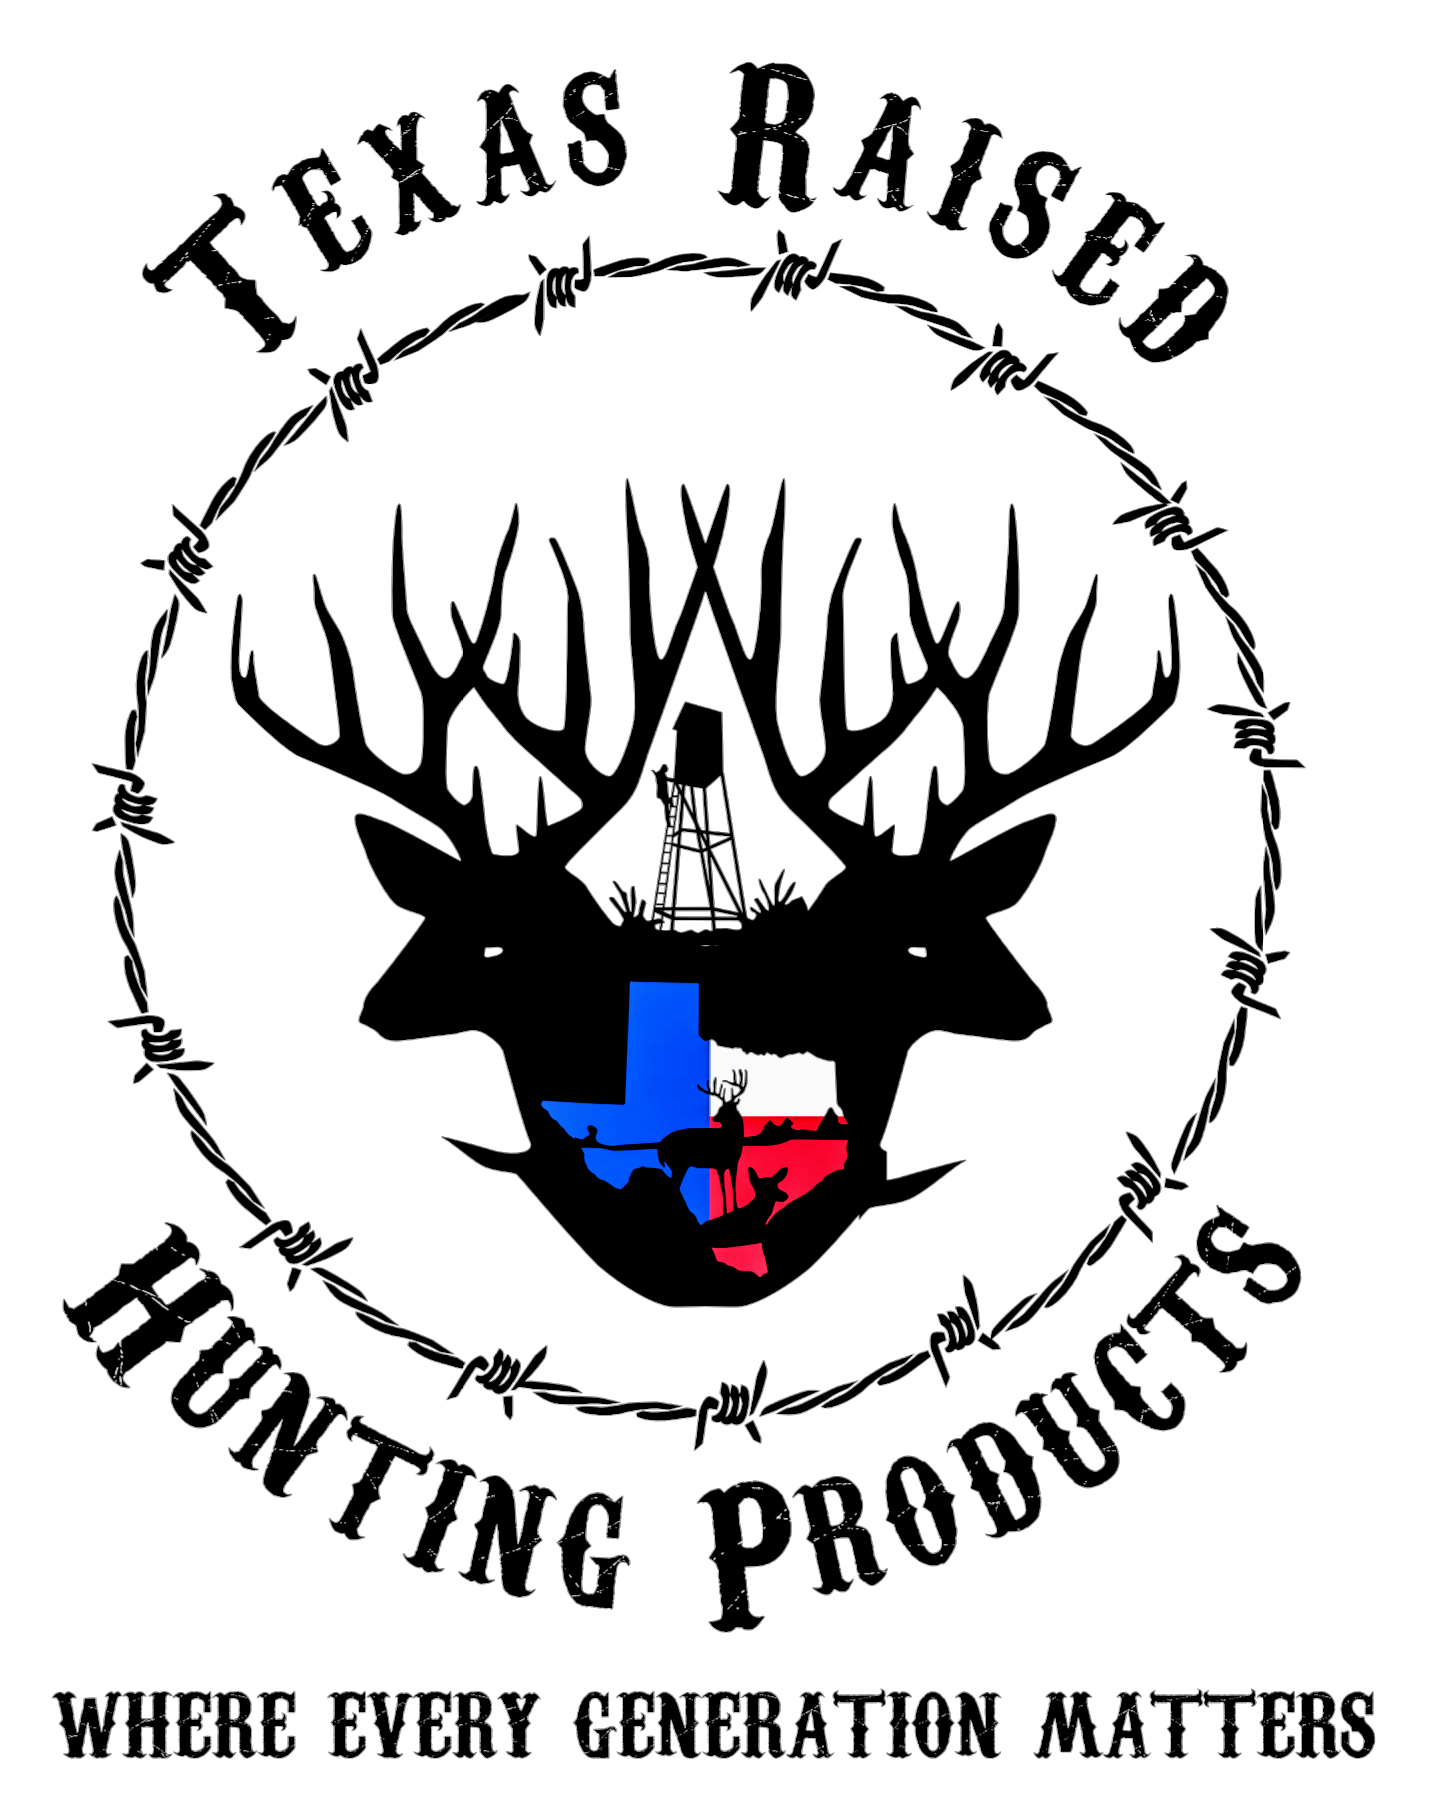 Texas Raised Hunting Products Innovative Deer Scents Deer Urine